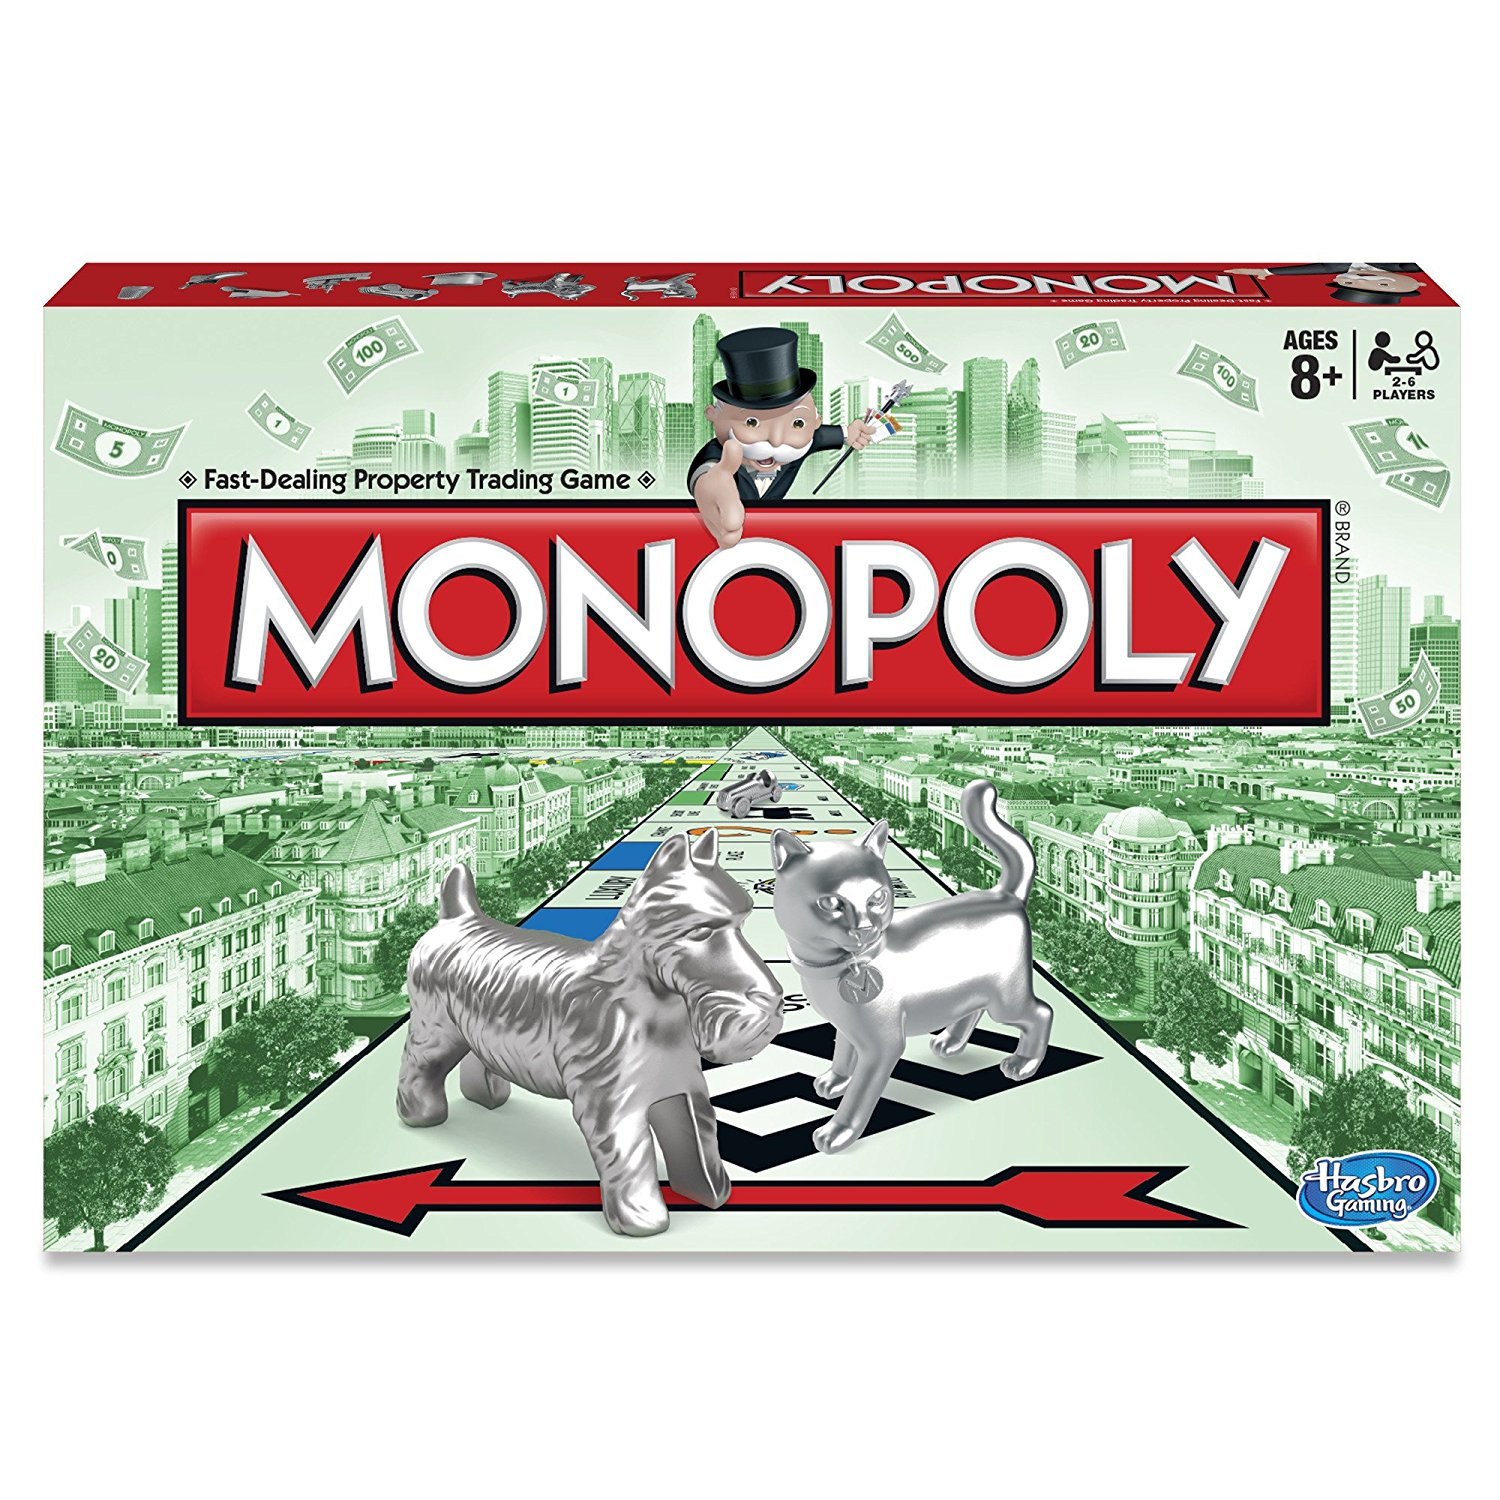 Monopoly Game By Hasbro Ship from US by